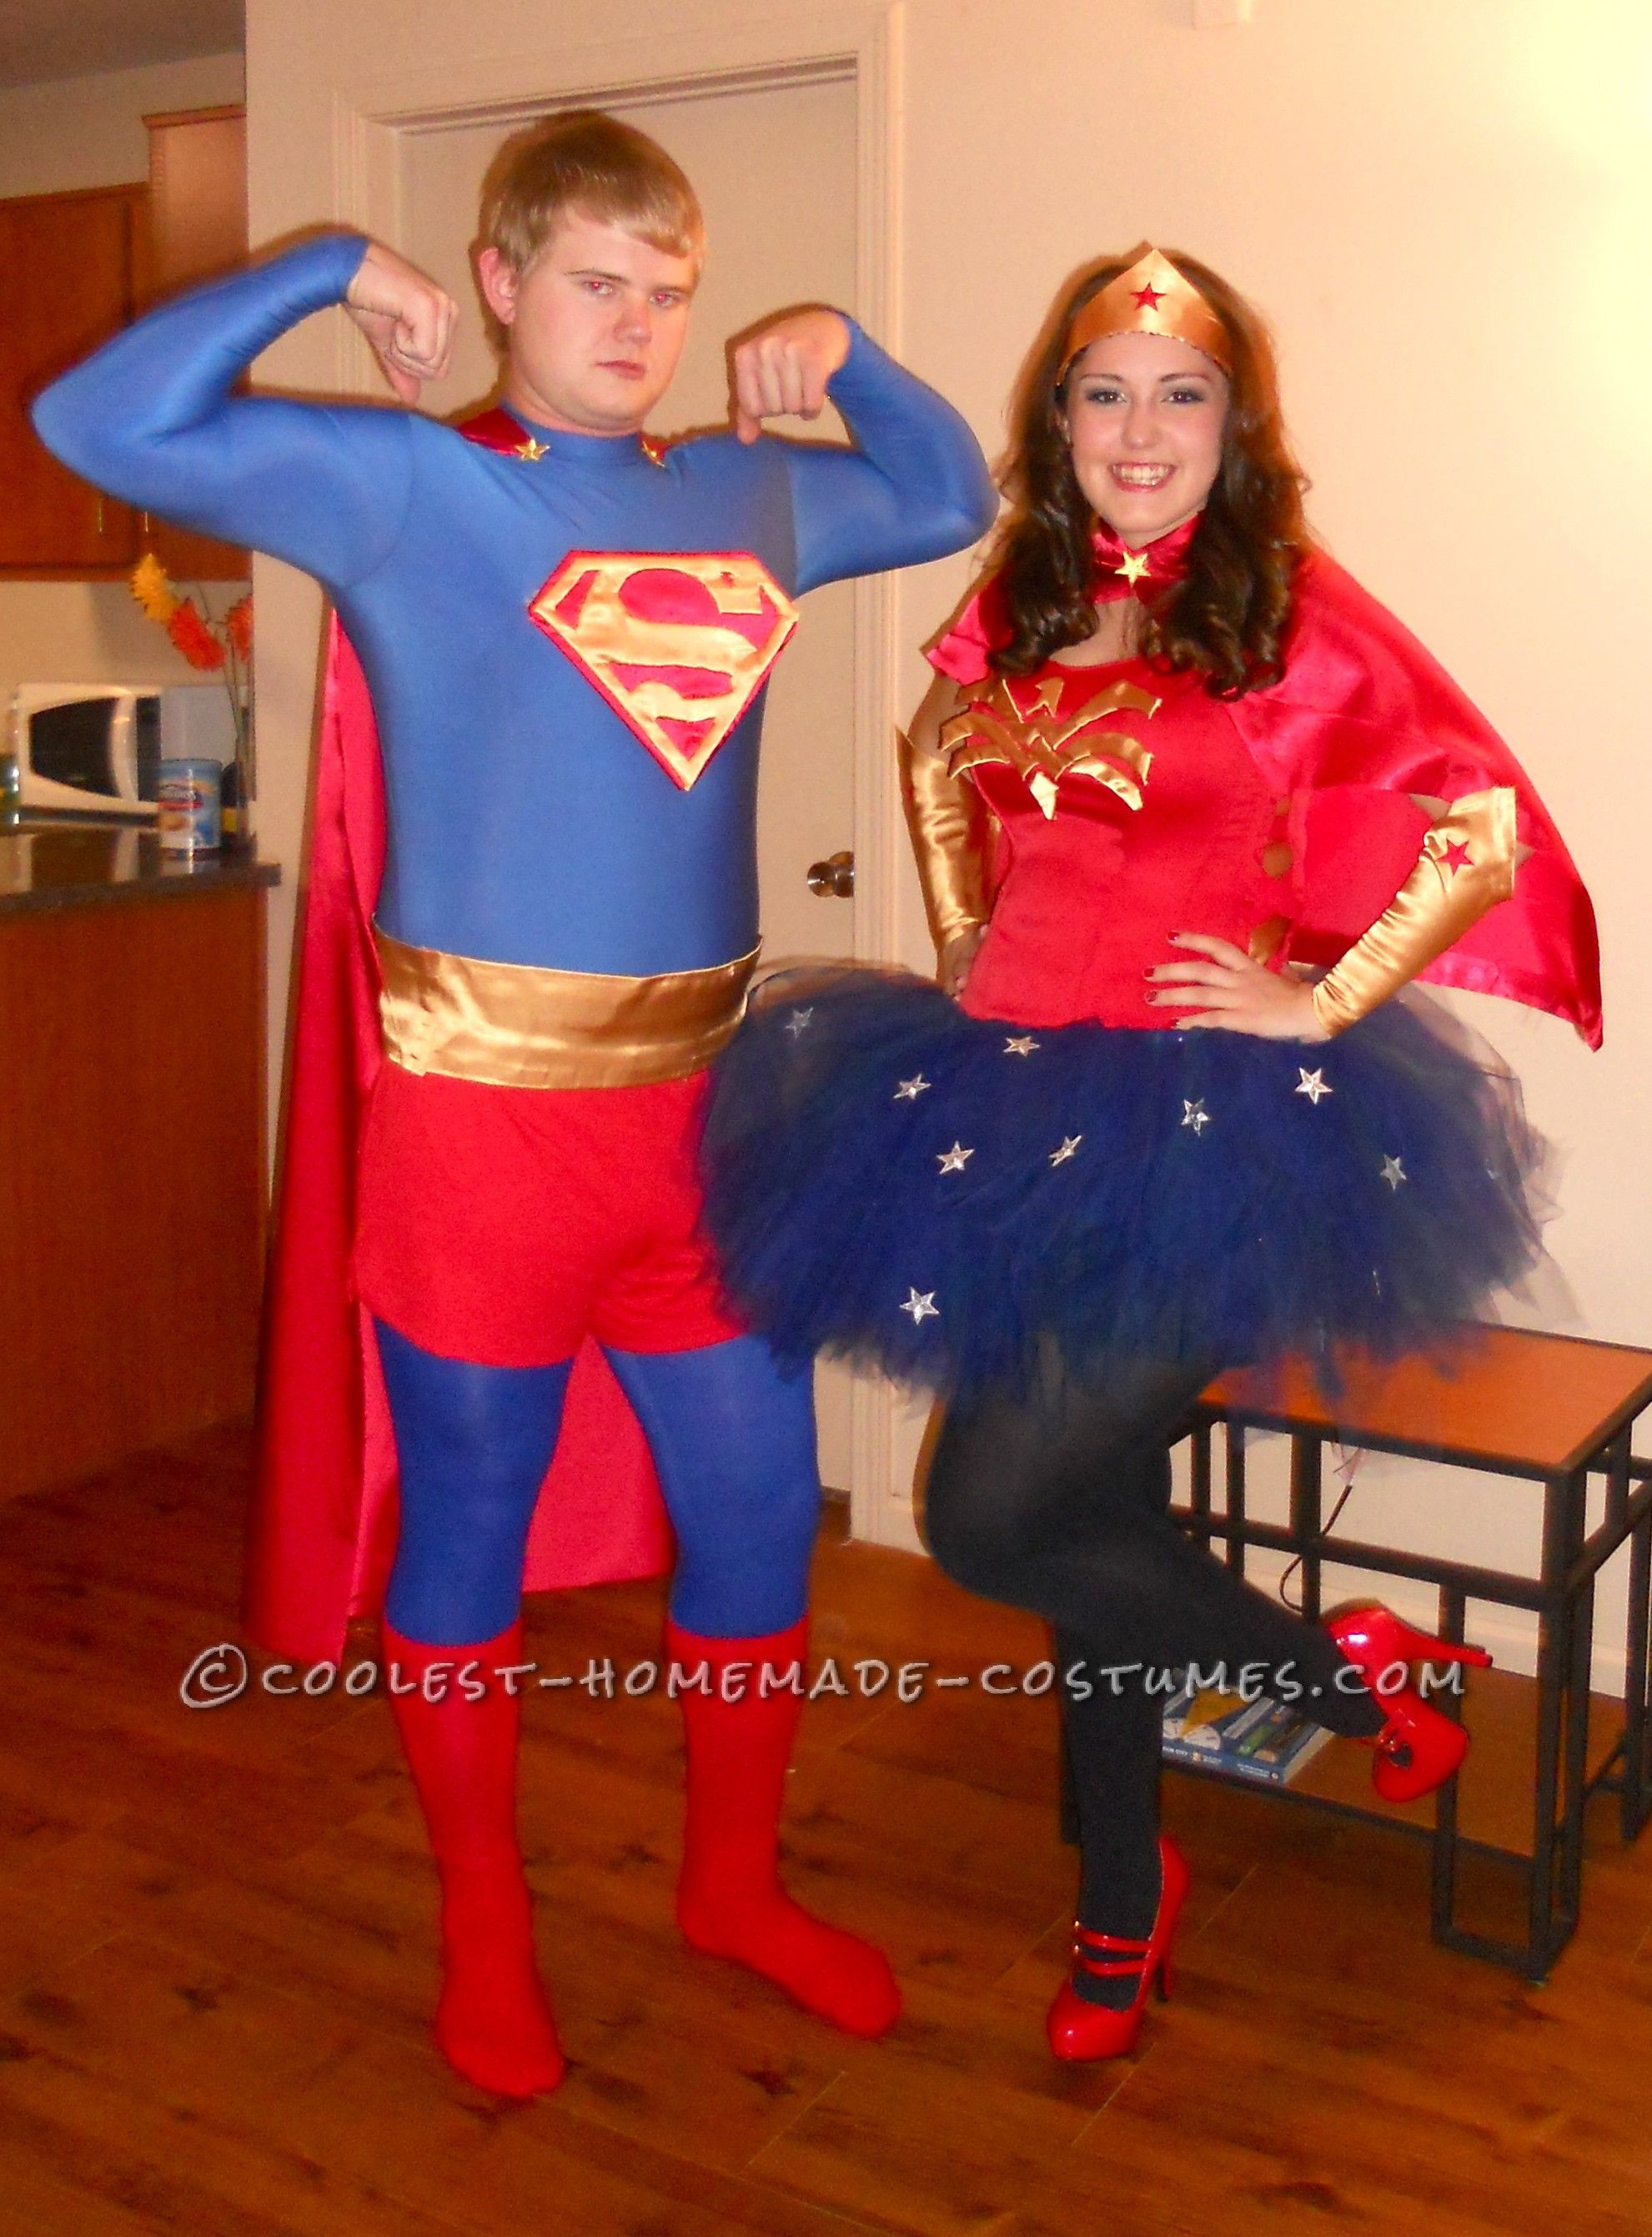 Best ideas about DIY Superman Costume . Save or Pin Coolest Homemade Superman and Wonder Woman Couples Now.